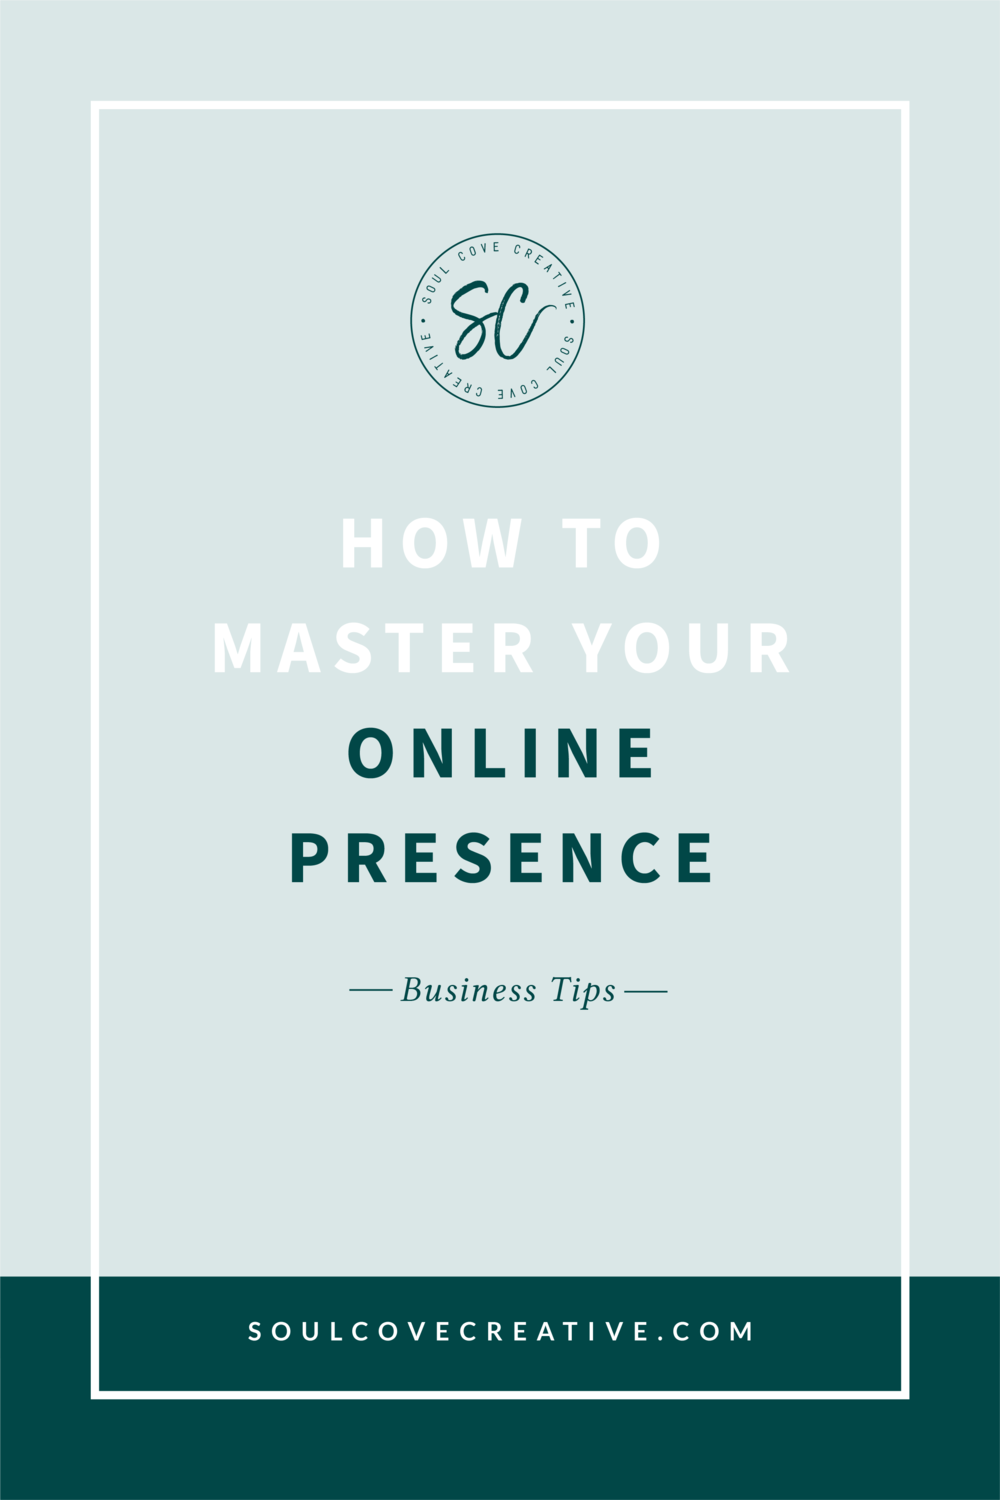 How to Master Your Online Presence